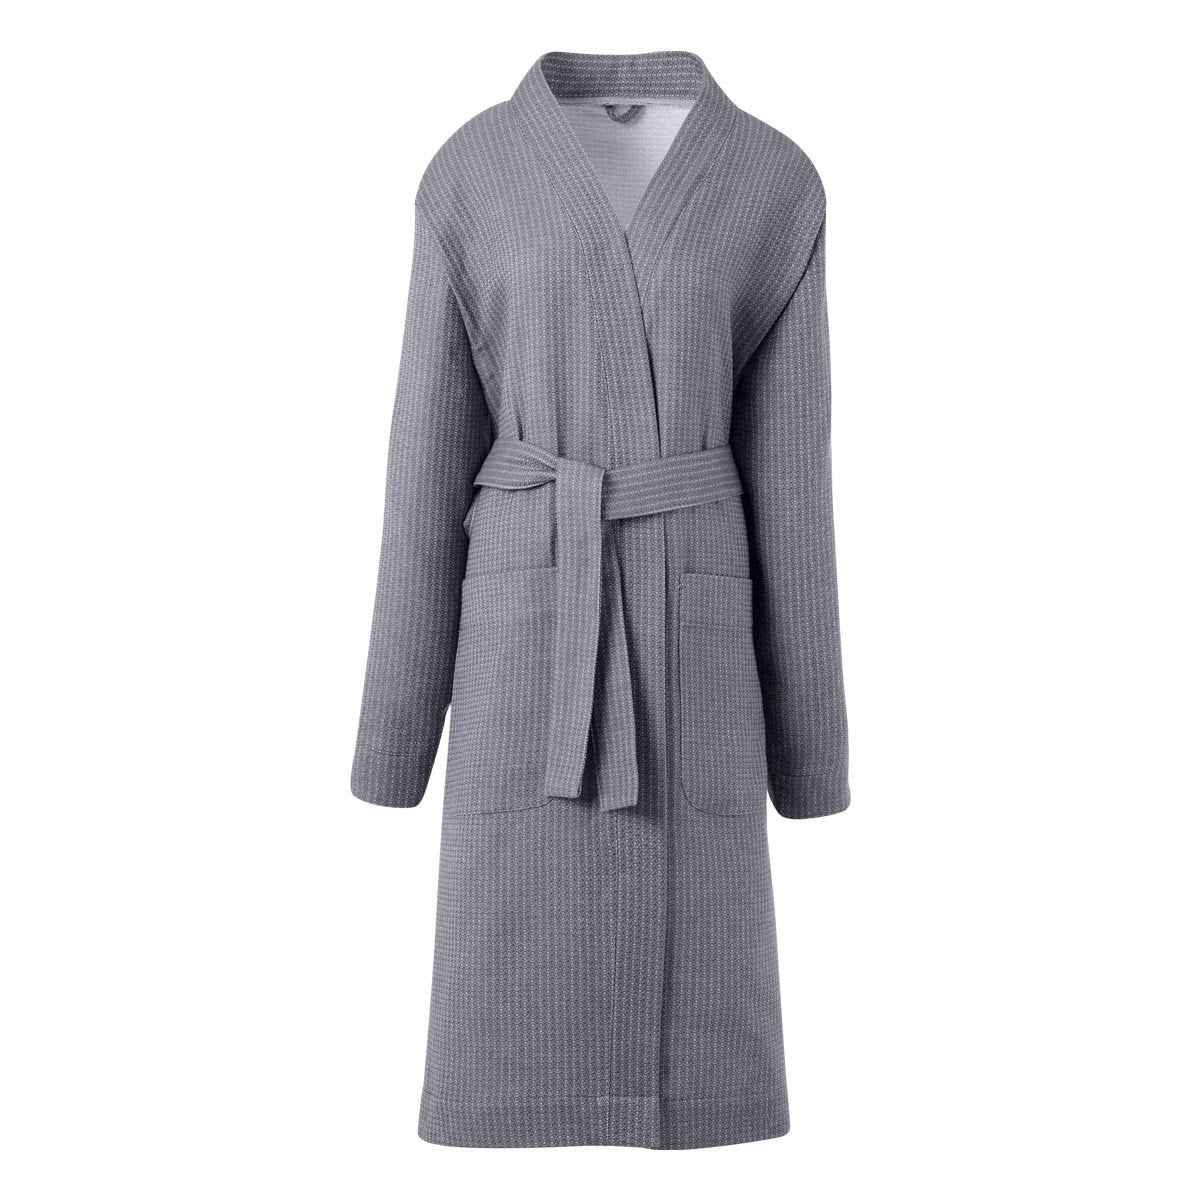 Duetto Caviar Bathrobe by Le Jacquard Français | Fig Linens - Gray Bath Robe with pockets and belt